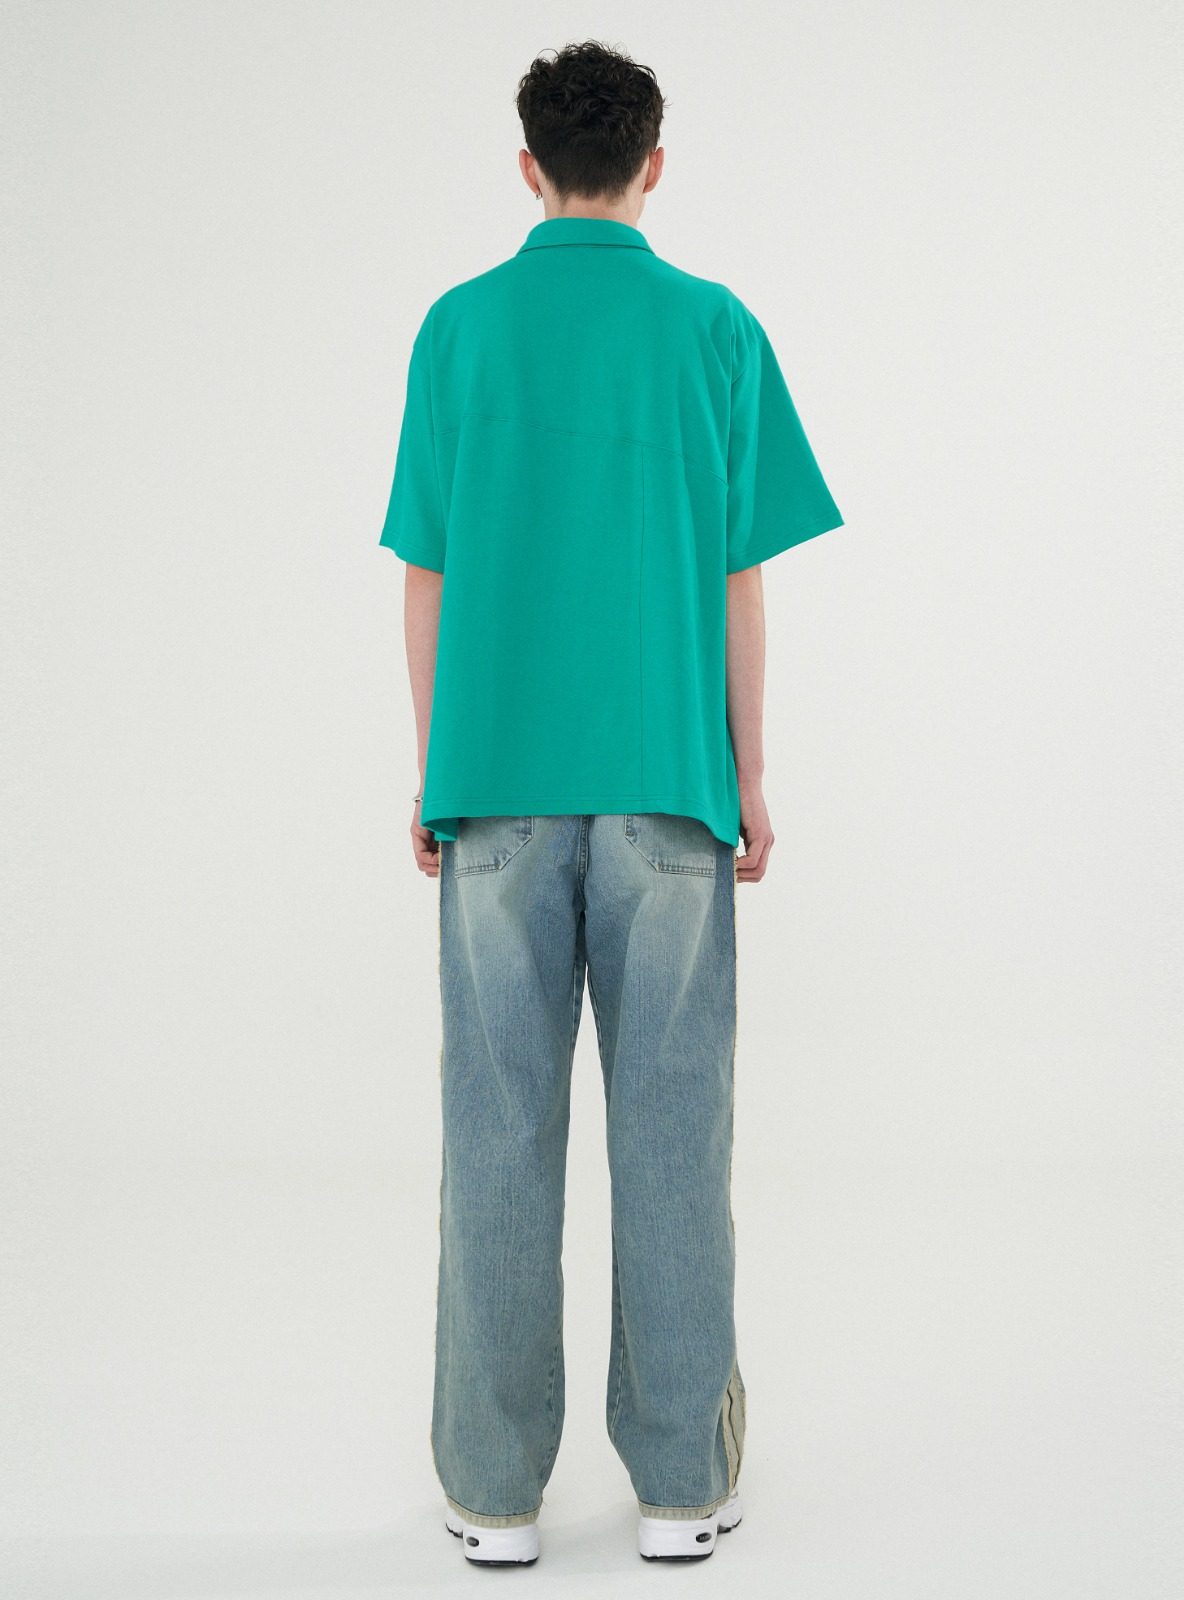 TWIST PATTERN PIQUE TEE EMERALD GREEN